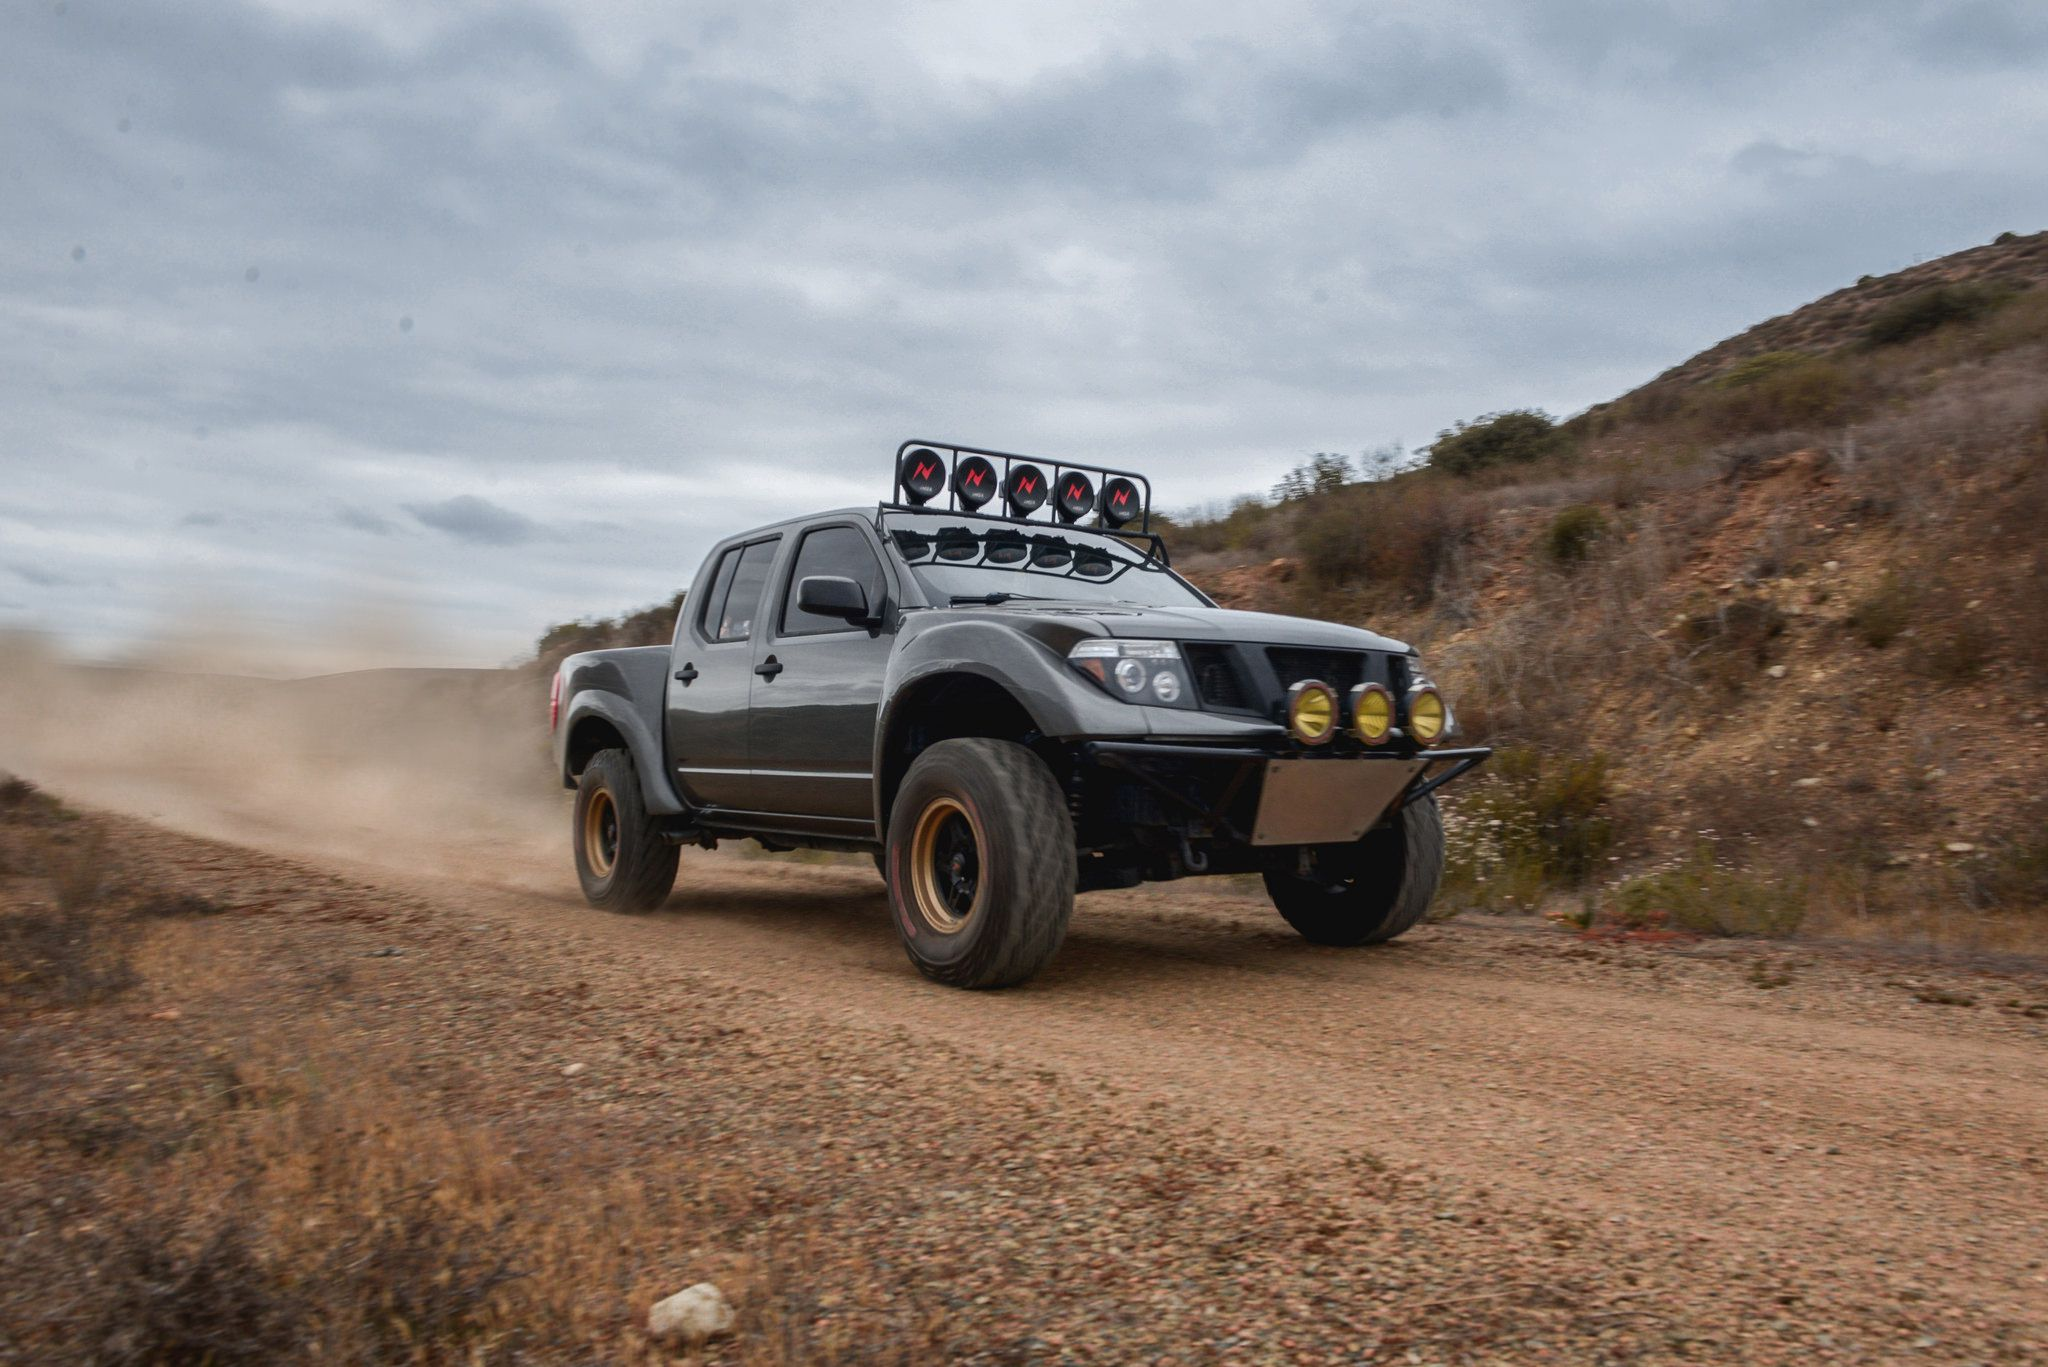 off road suv - dark-grey Nissan Frontier SE with five lights on roof